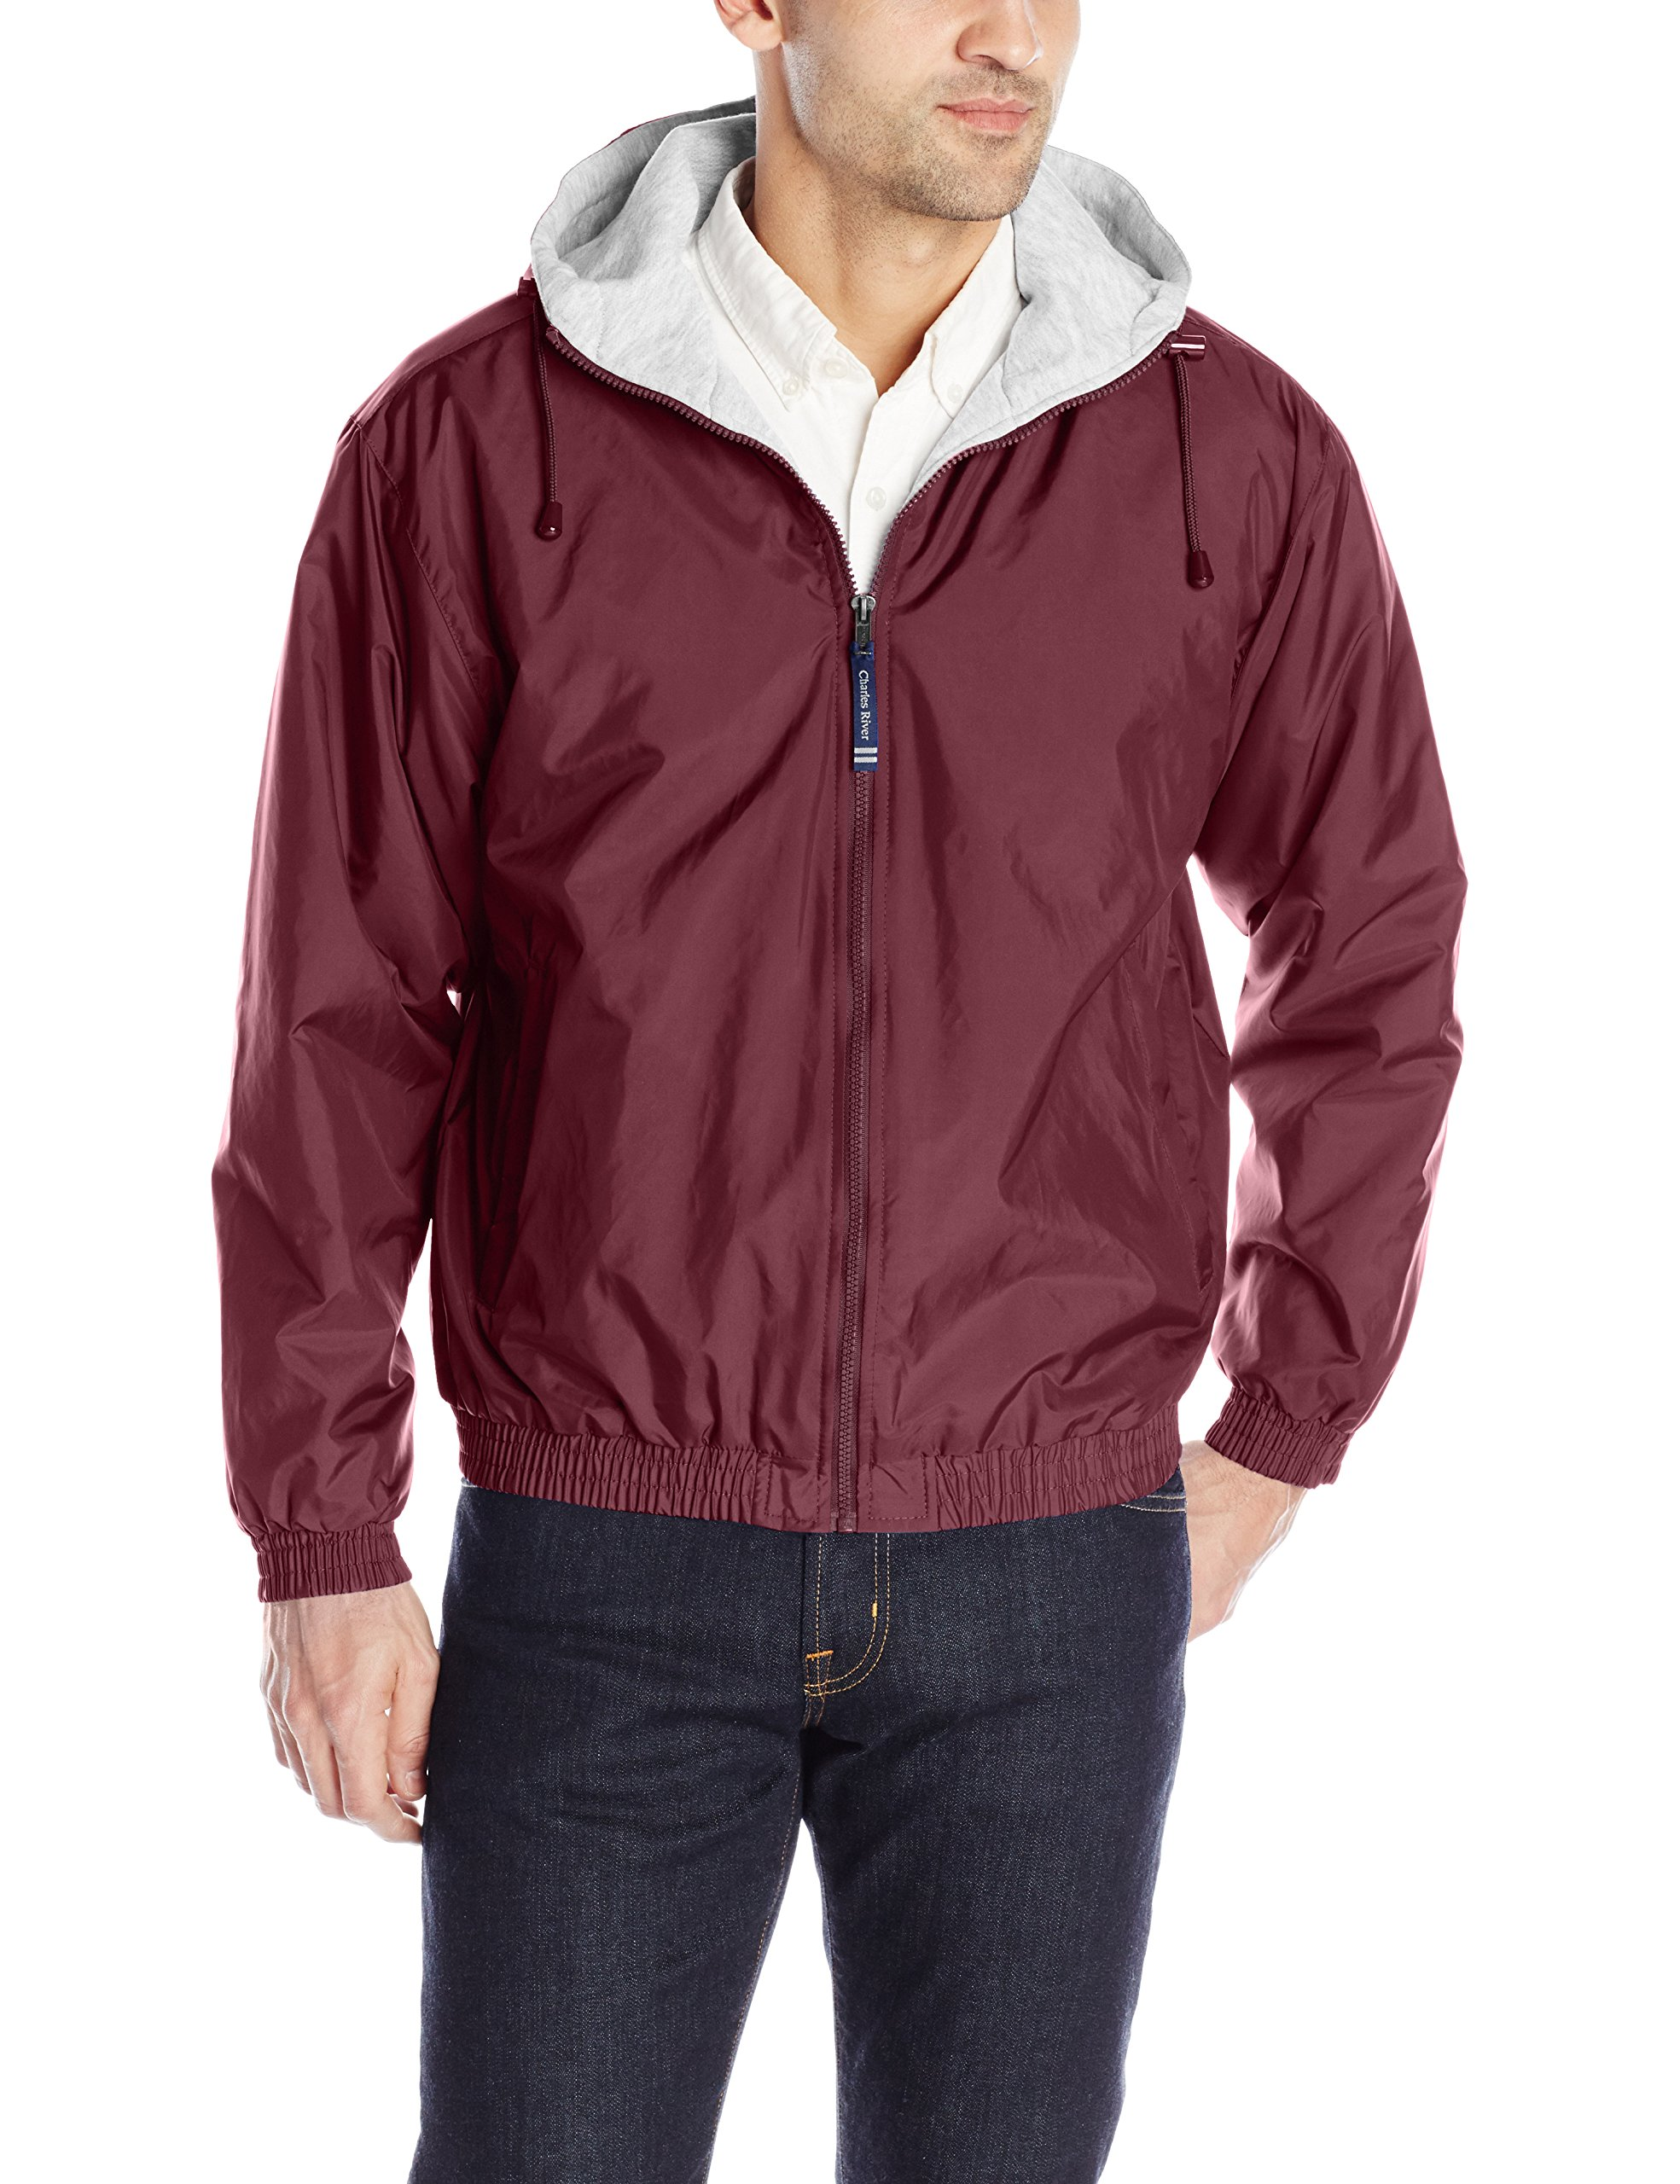 The ''Performer Collection'' Performer Nylon Jacket from Charles River Apparel,030 Maroon,Adult Large